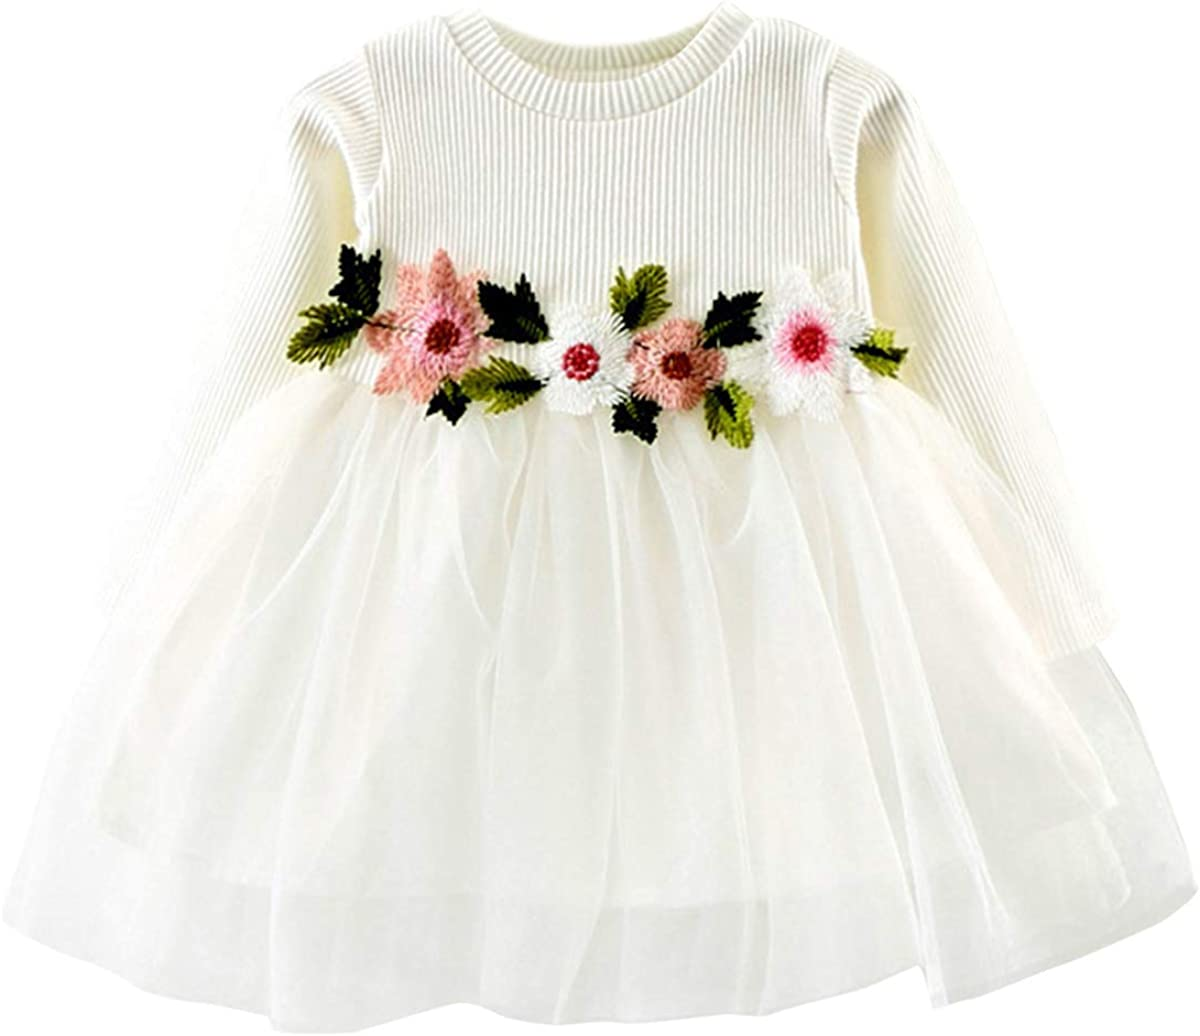 DaMohony Baby Girl Dress Long Sleeve Cotton Mesh Flower Dress Party Wedding Pageant Princess Dress for 0-24 Months